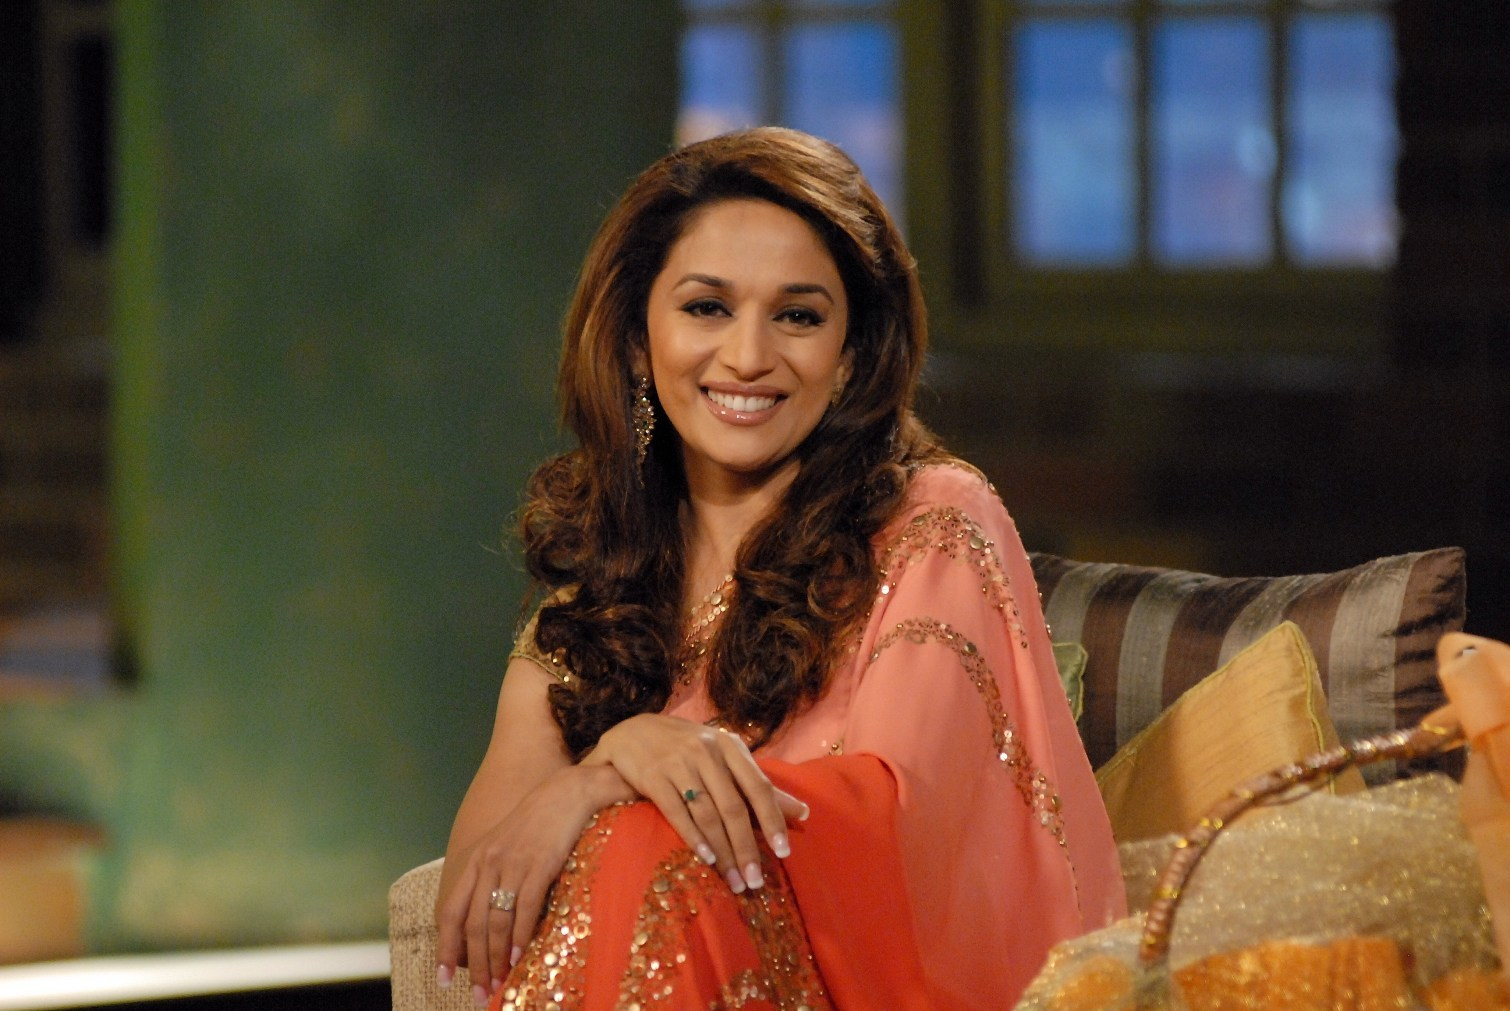 All Bollywood Girl Wallpaper Hd Wallpapers Of Madhuri Dixit Hd Wallpapers